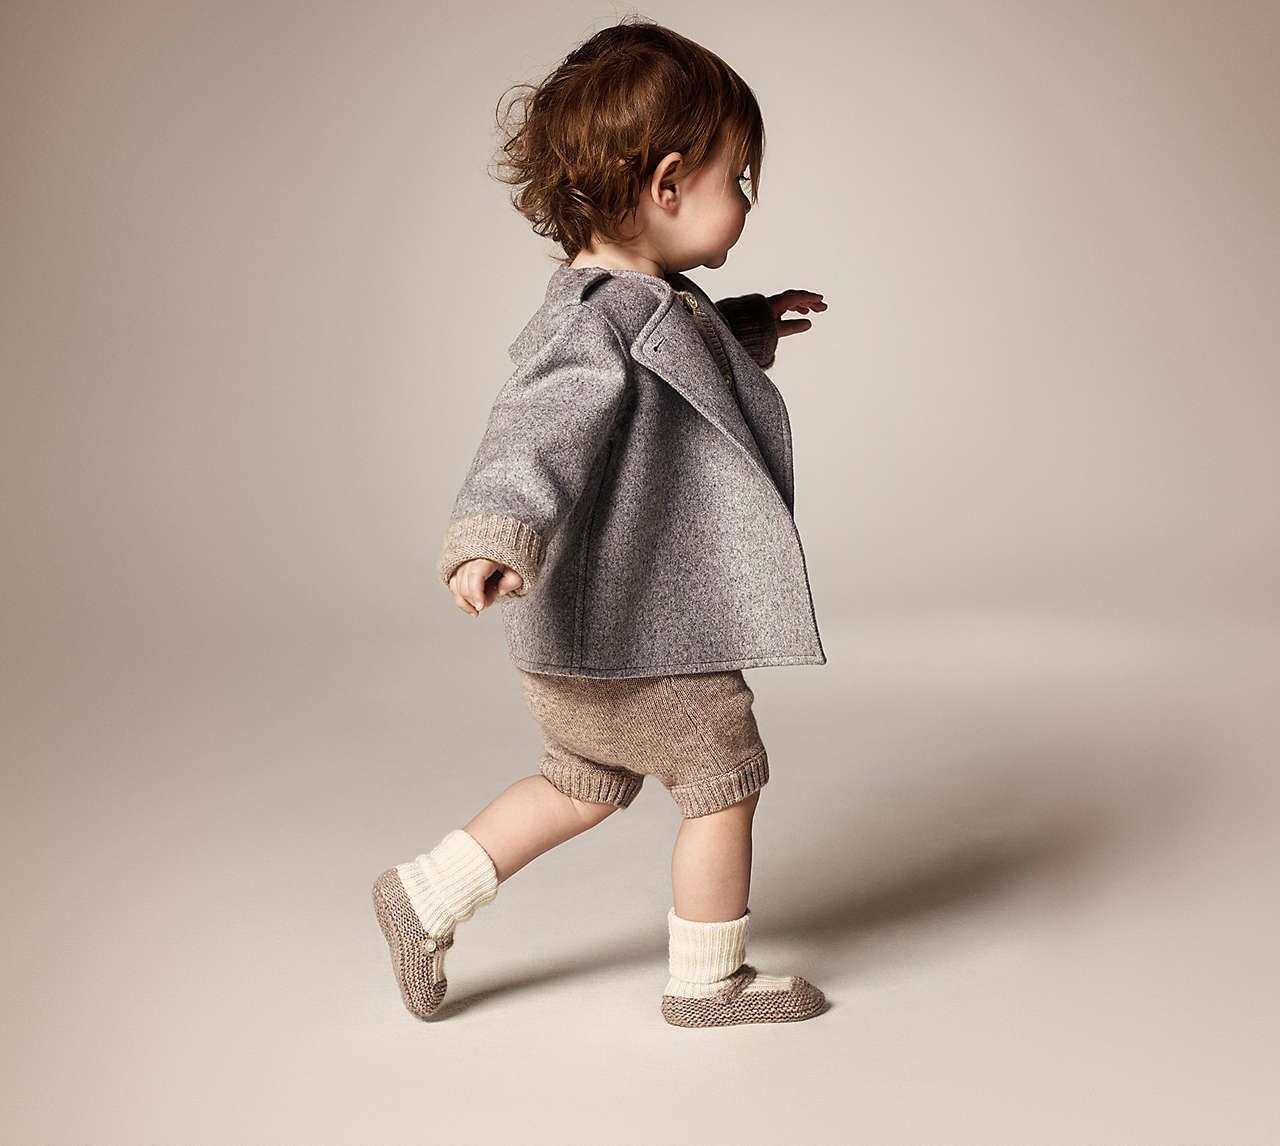 d8f5b3bc2 GIRL 0 - 24 MONTHS Burberry Fashion Kids, Baby Boy Fashion, Cute Outfits For